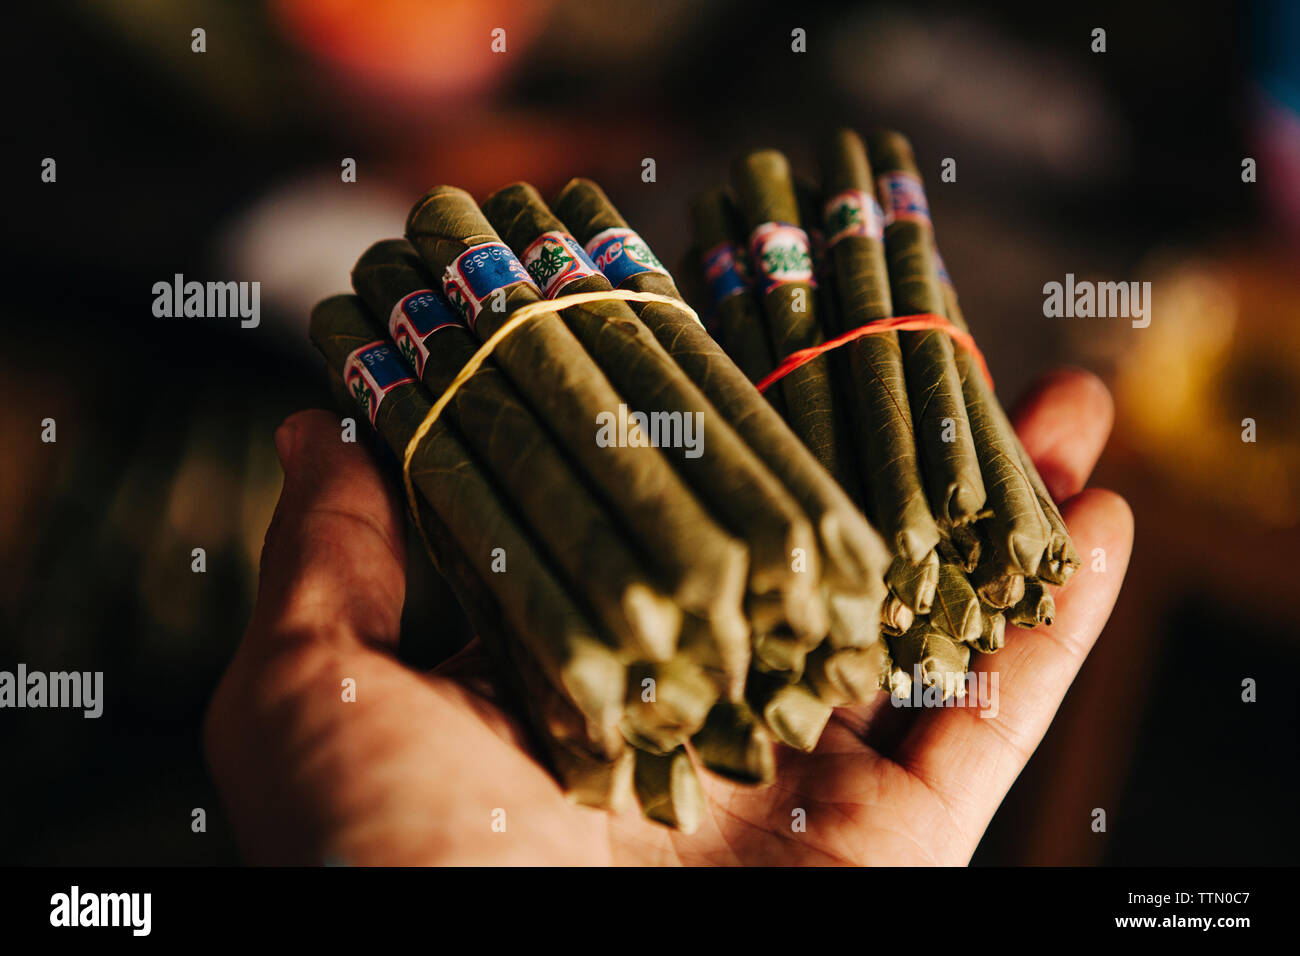 Cropped hand holding cigars - Stock Image